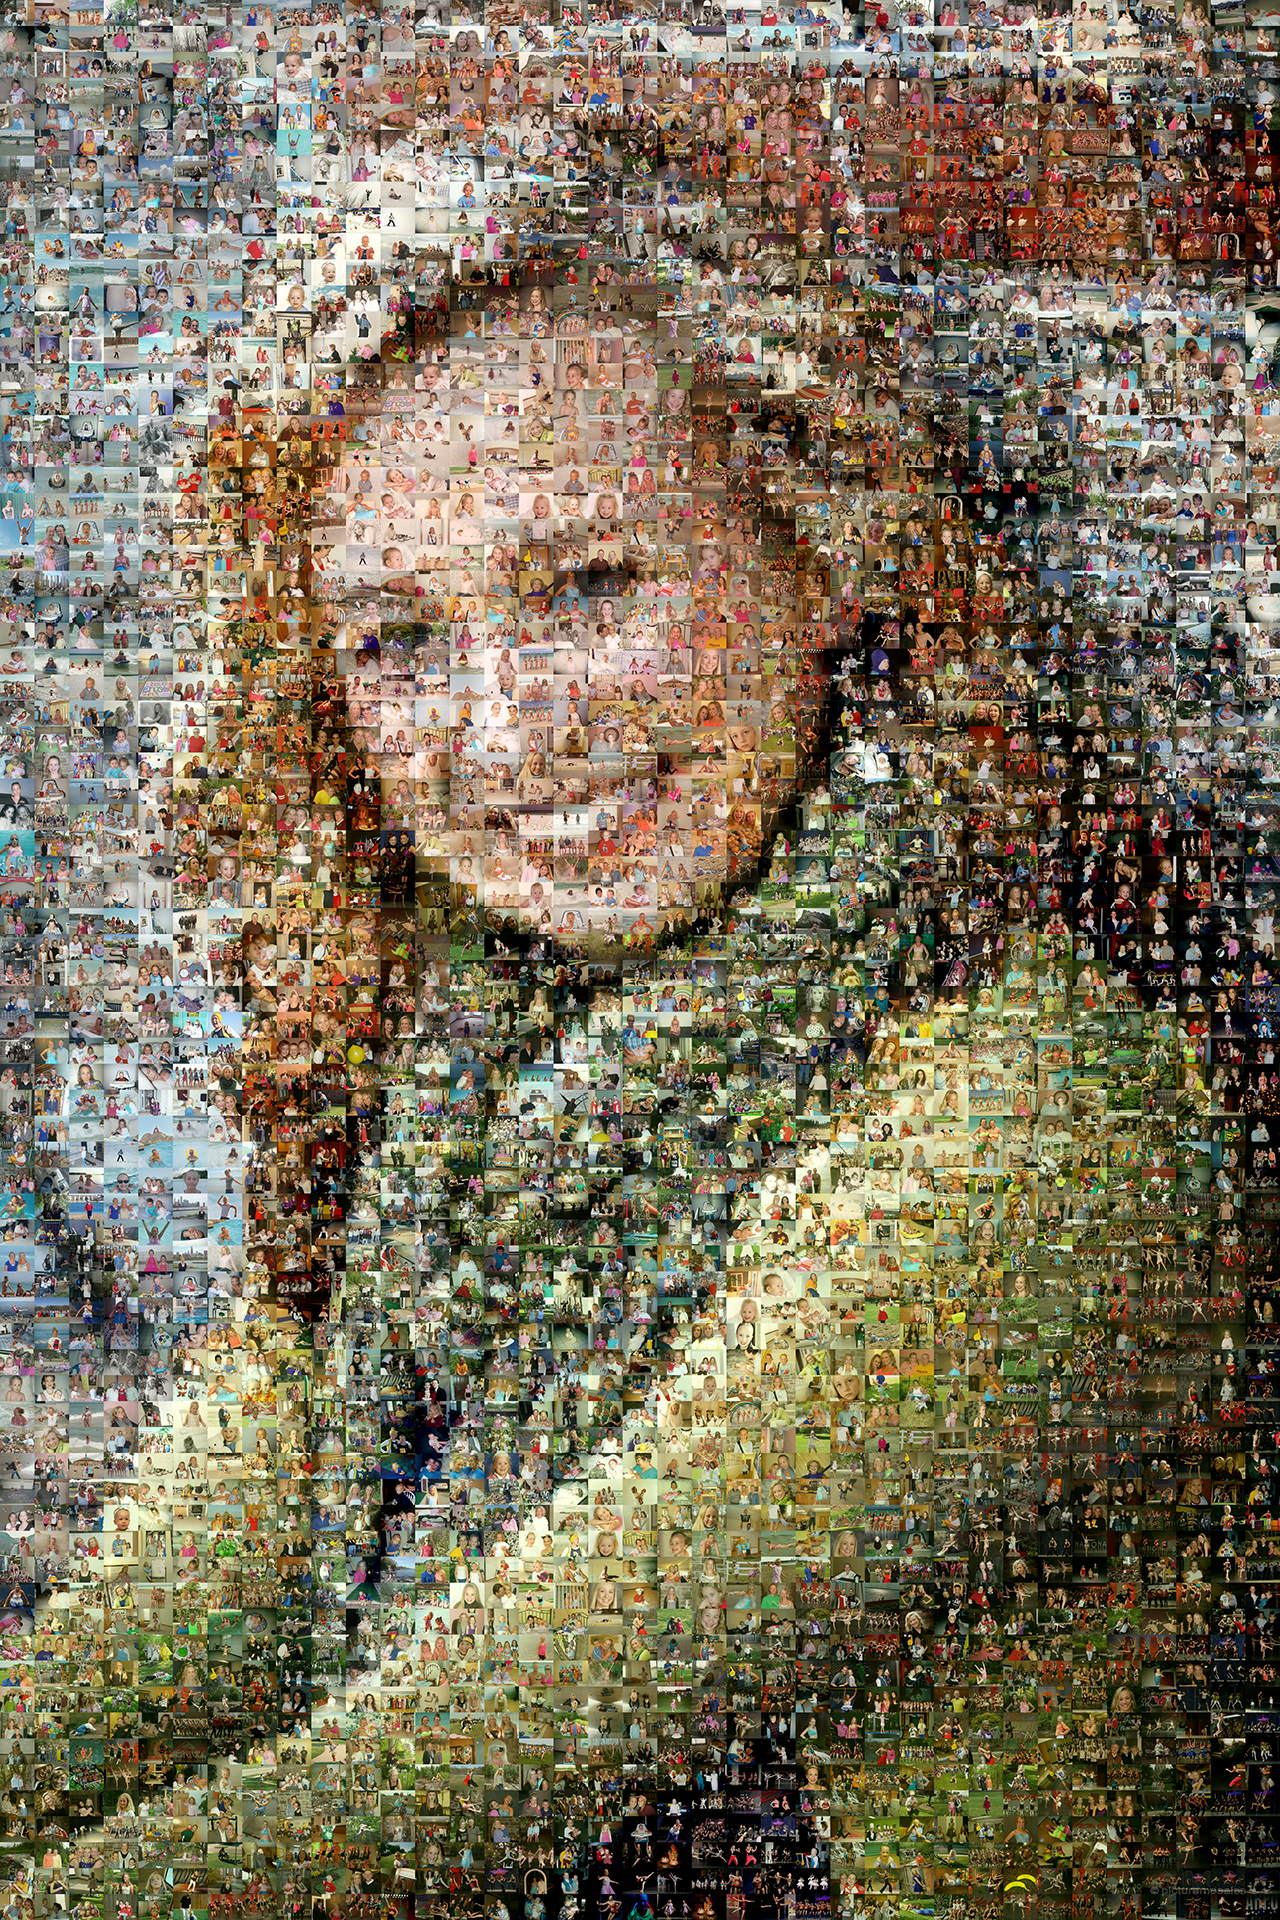 photo mosaic created using over 3600 photos of family and friends